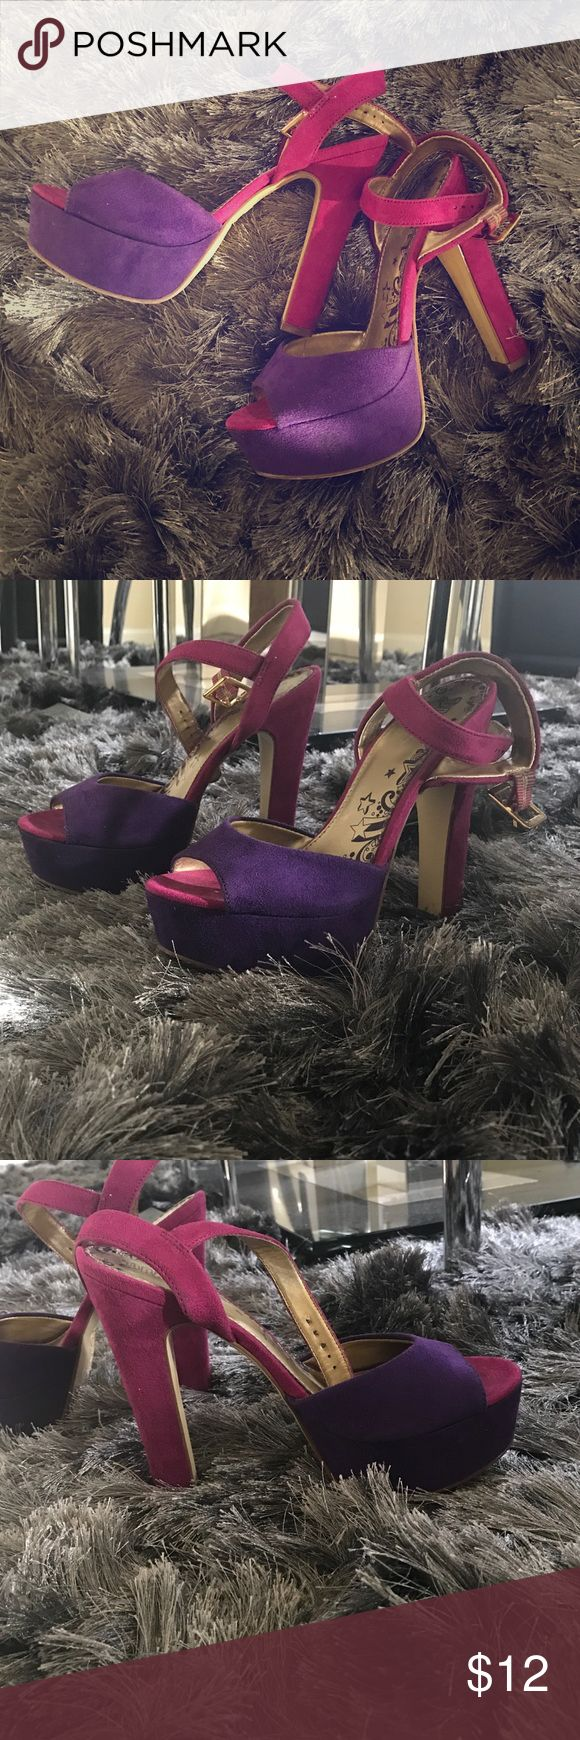 Fuchsia and Purple Sandals Beautiful and fashionable platform sandals Shoes